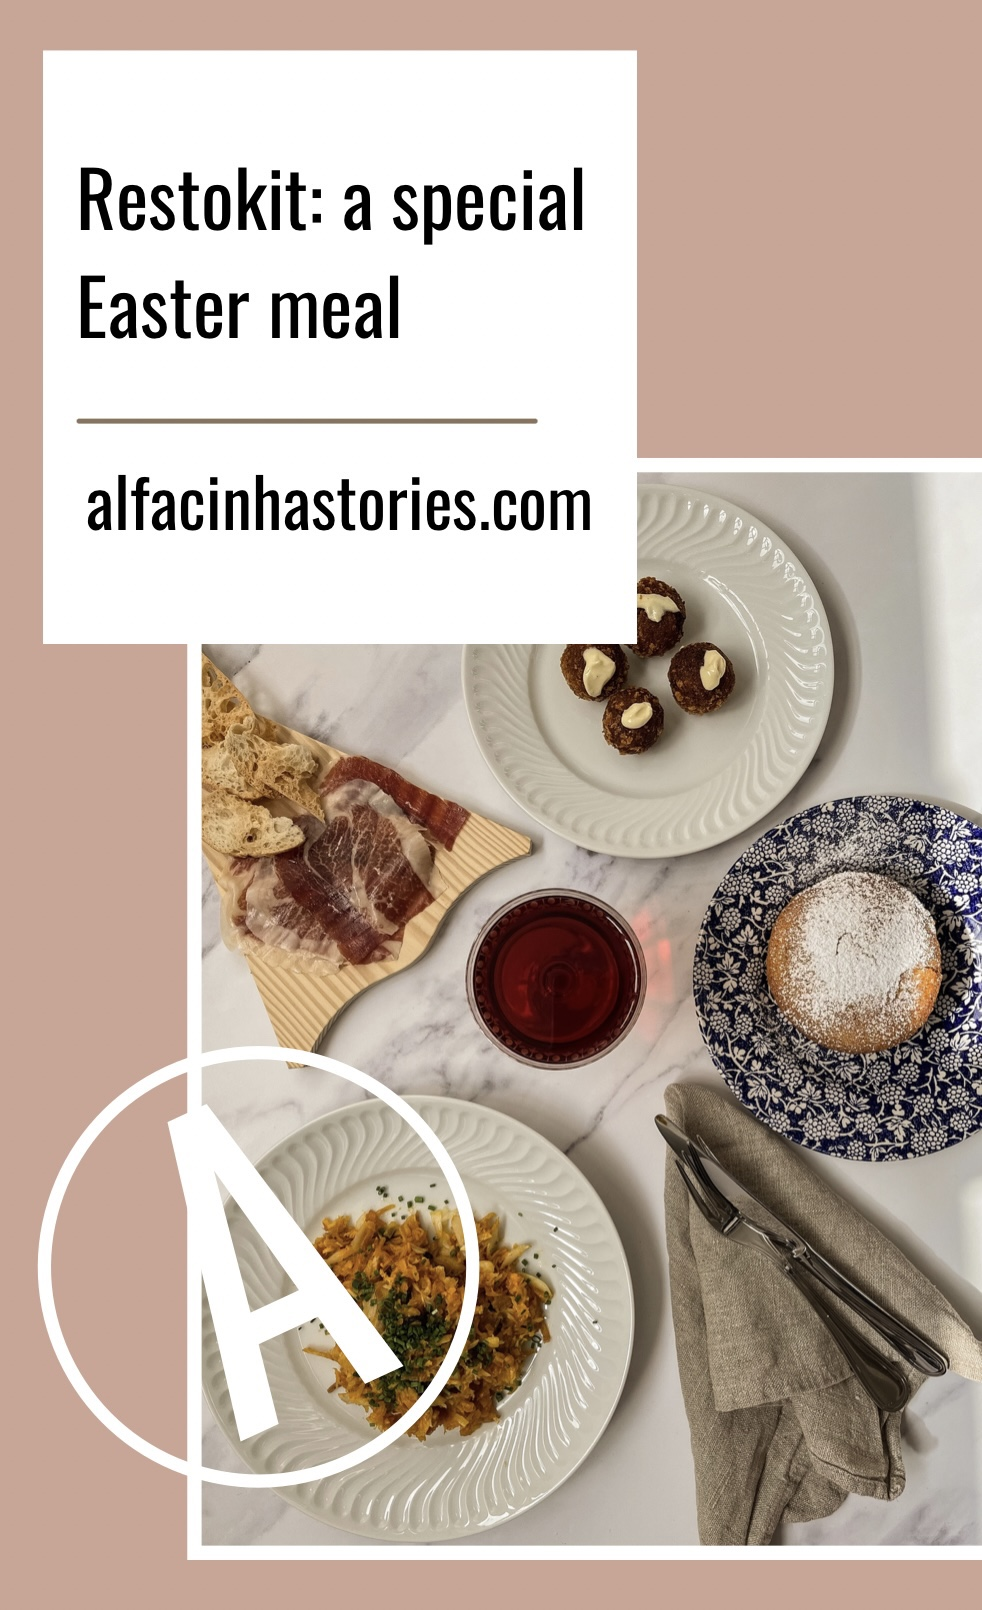 Restokit: a special Easter meal